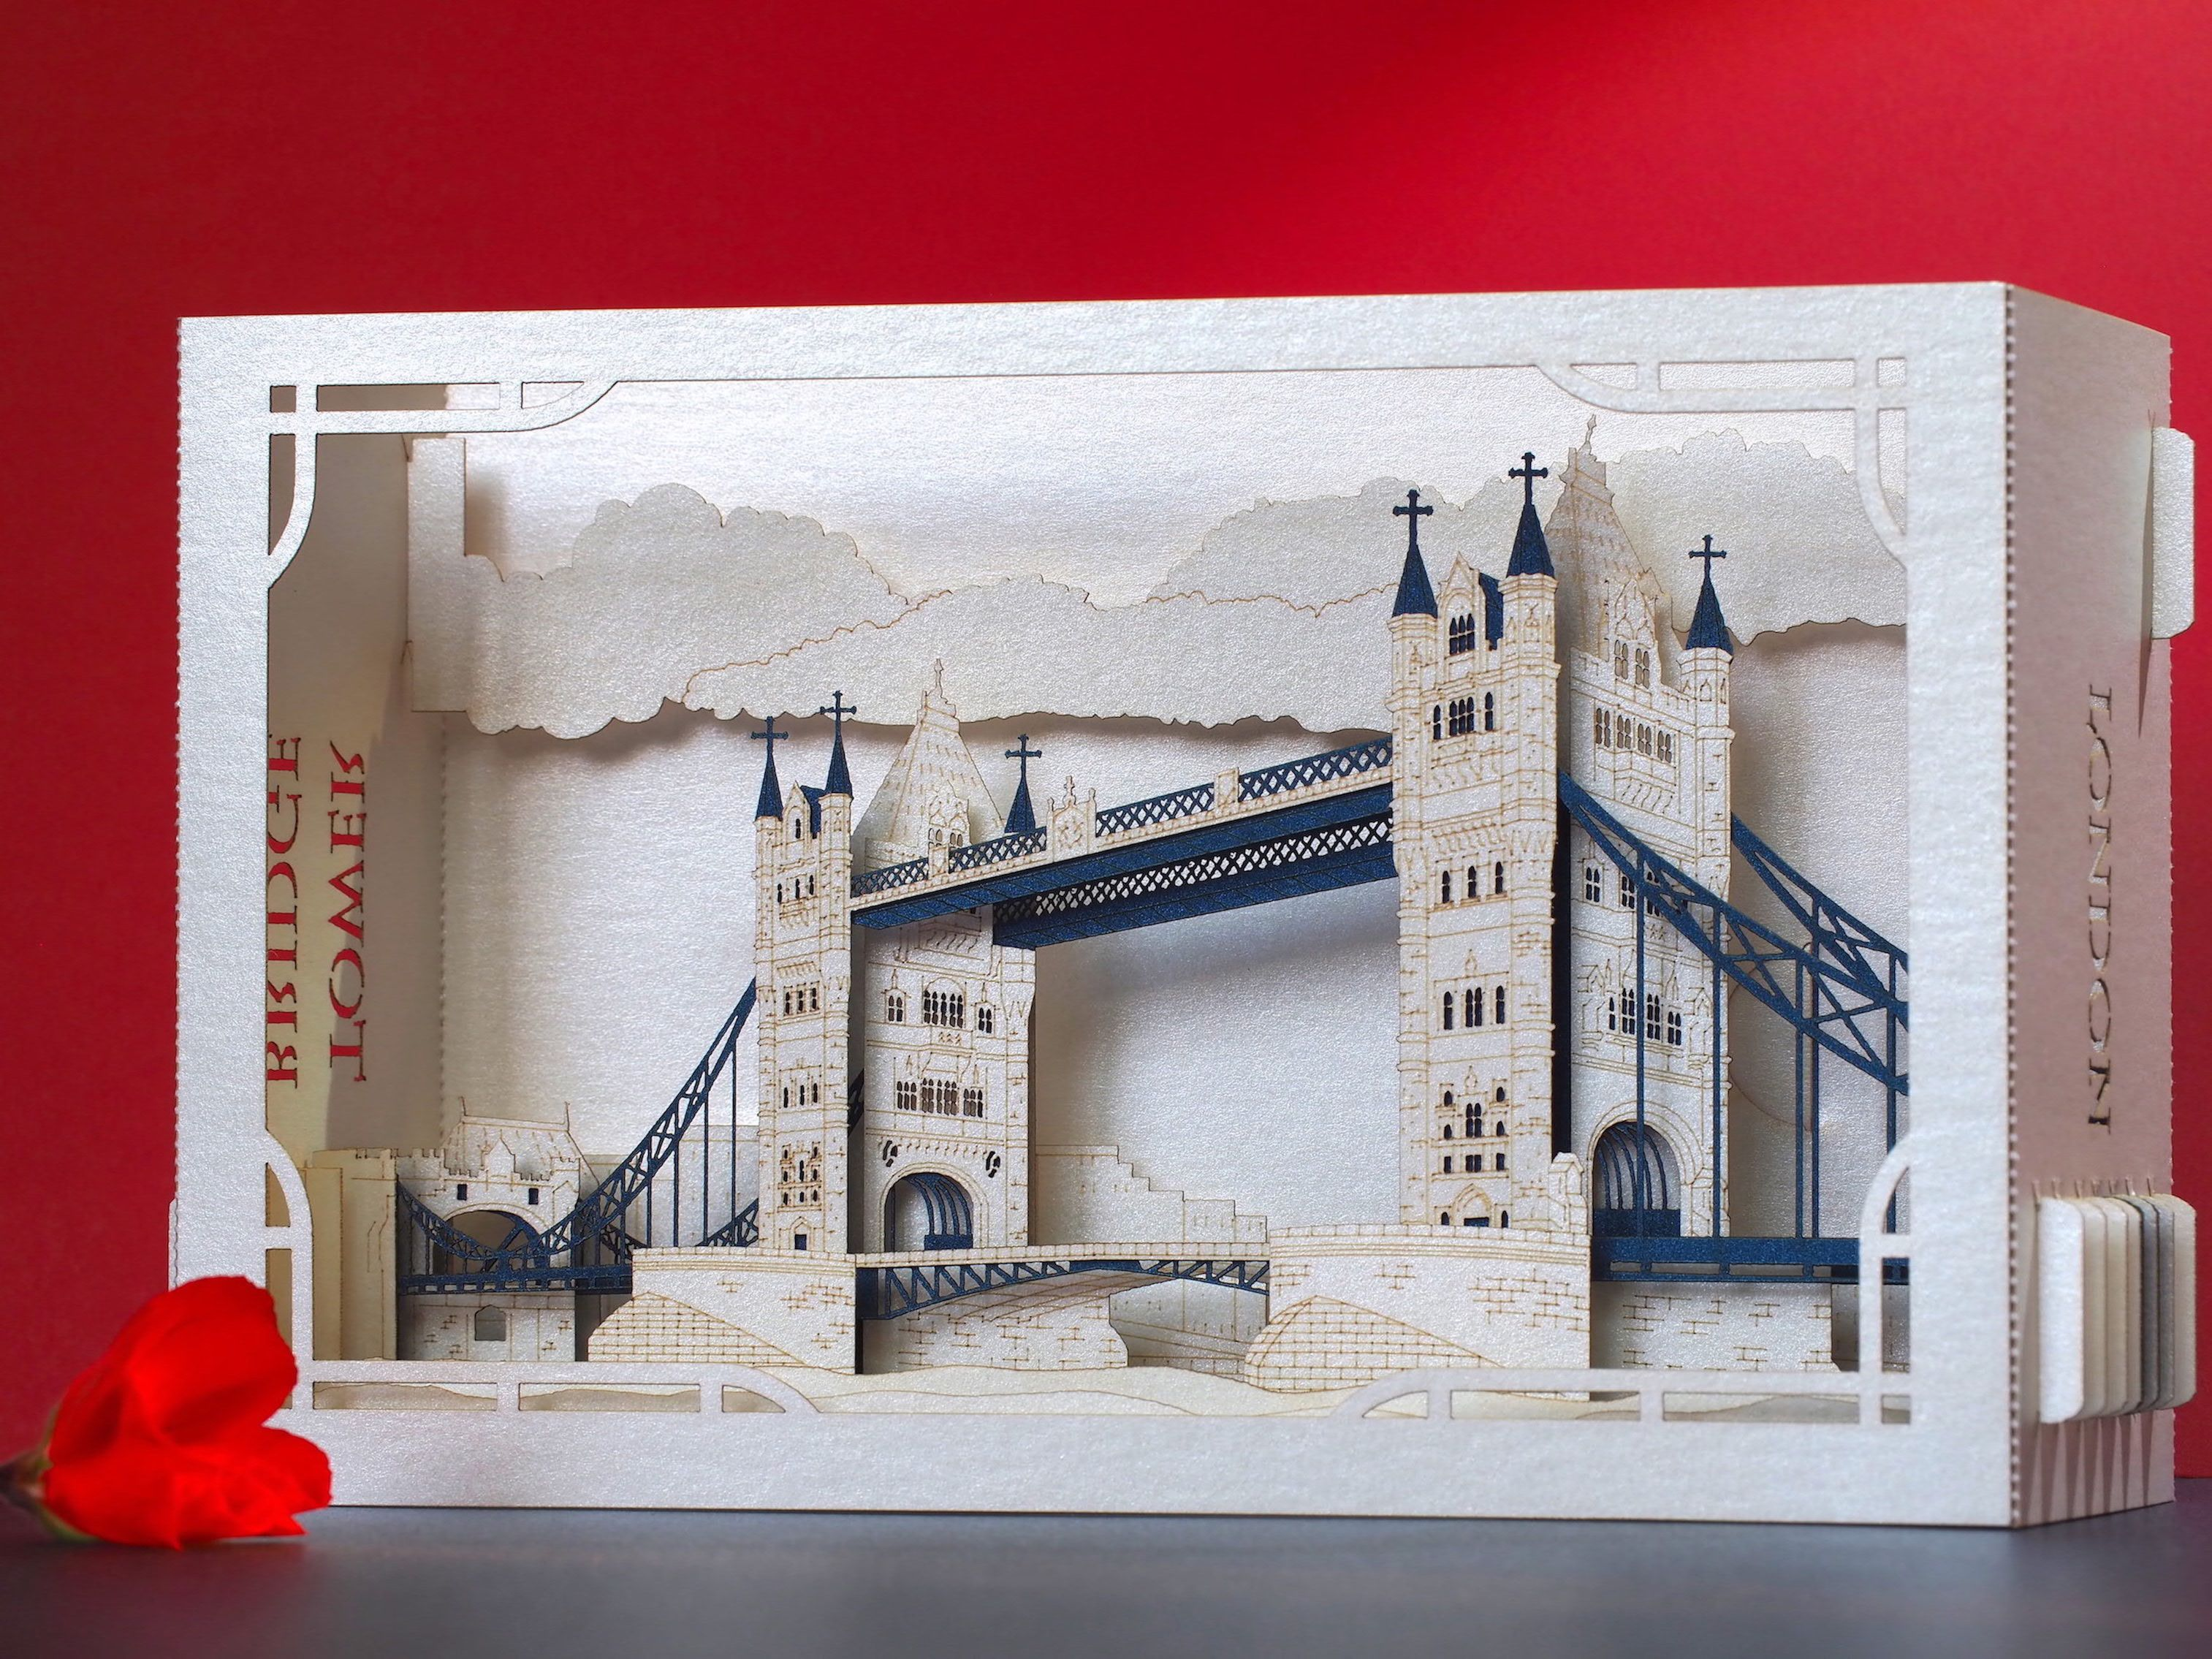 London Tower Bridge England Landmarks Paper Pop Up Card Etsy Paper Pop England Gift Tower Bridge London